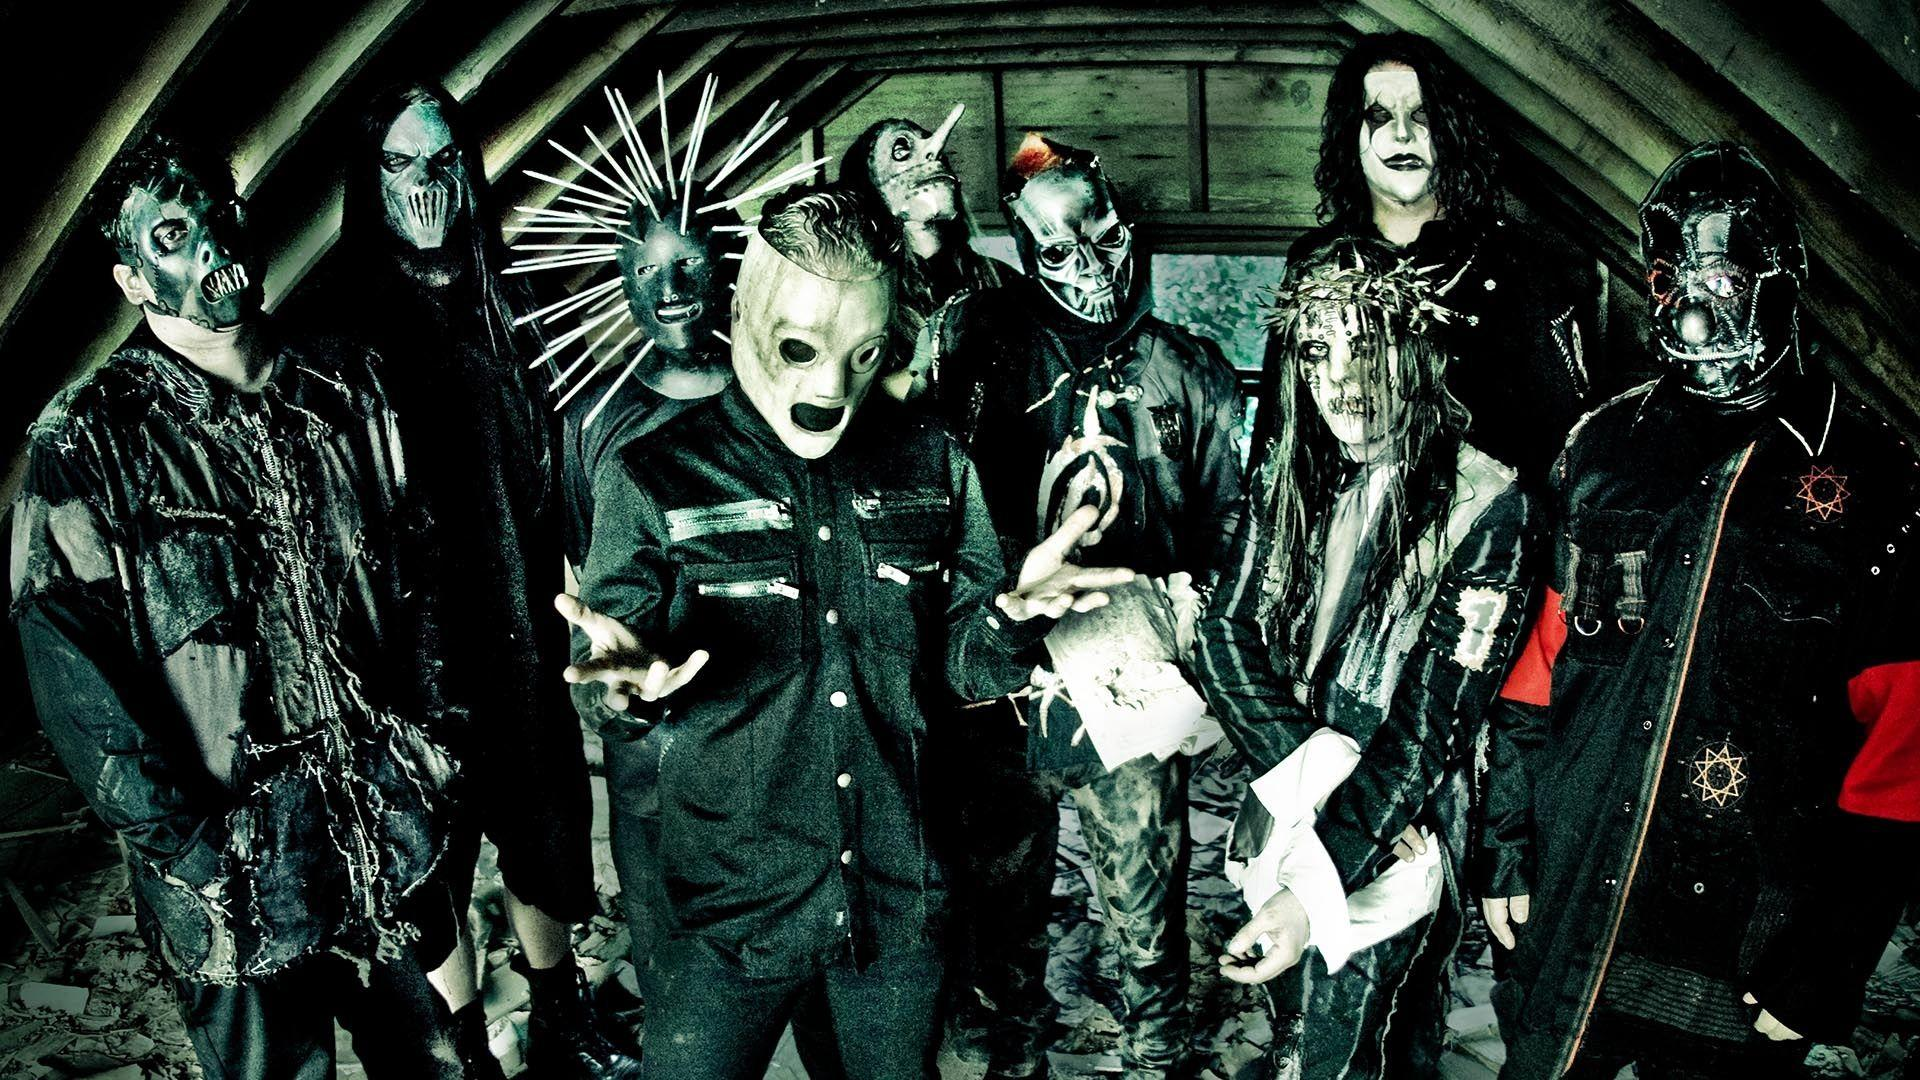 Slipknot Wallpapers Hd 1920x1080 Wallpaper Cave